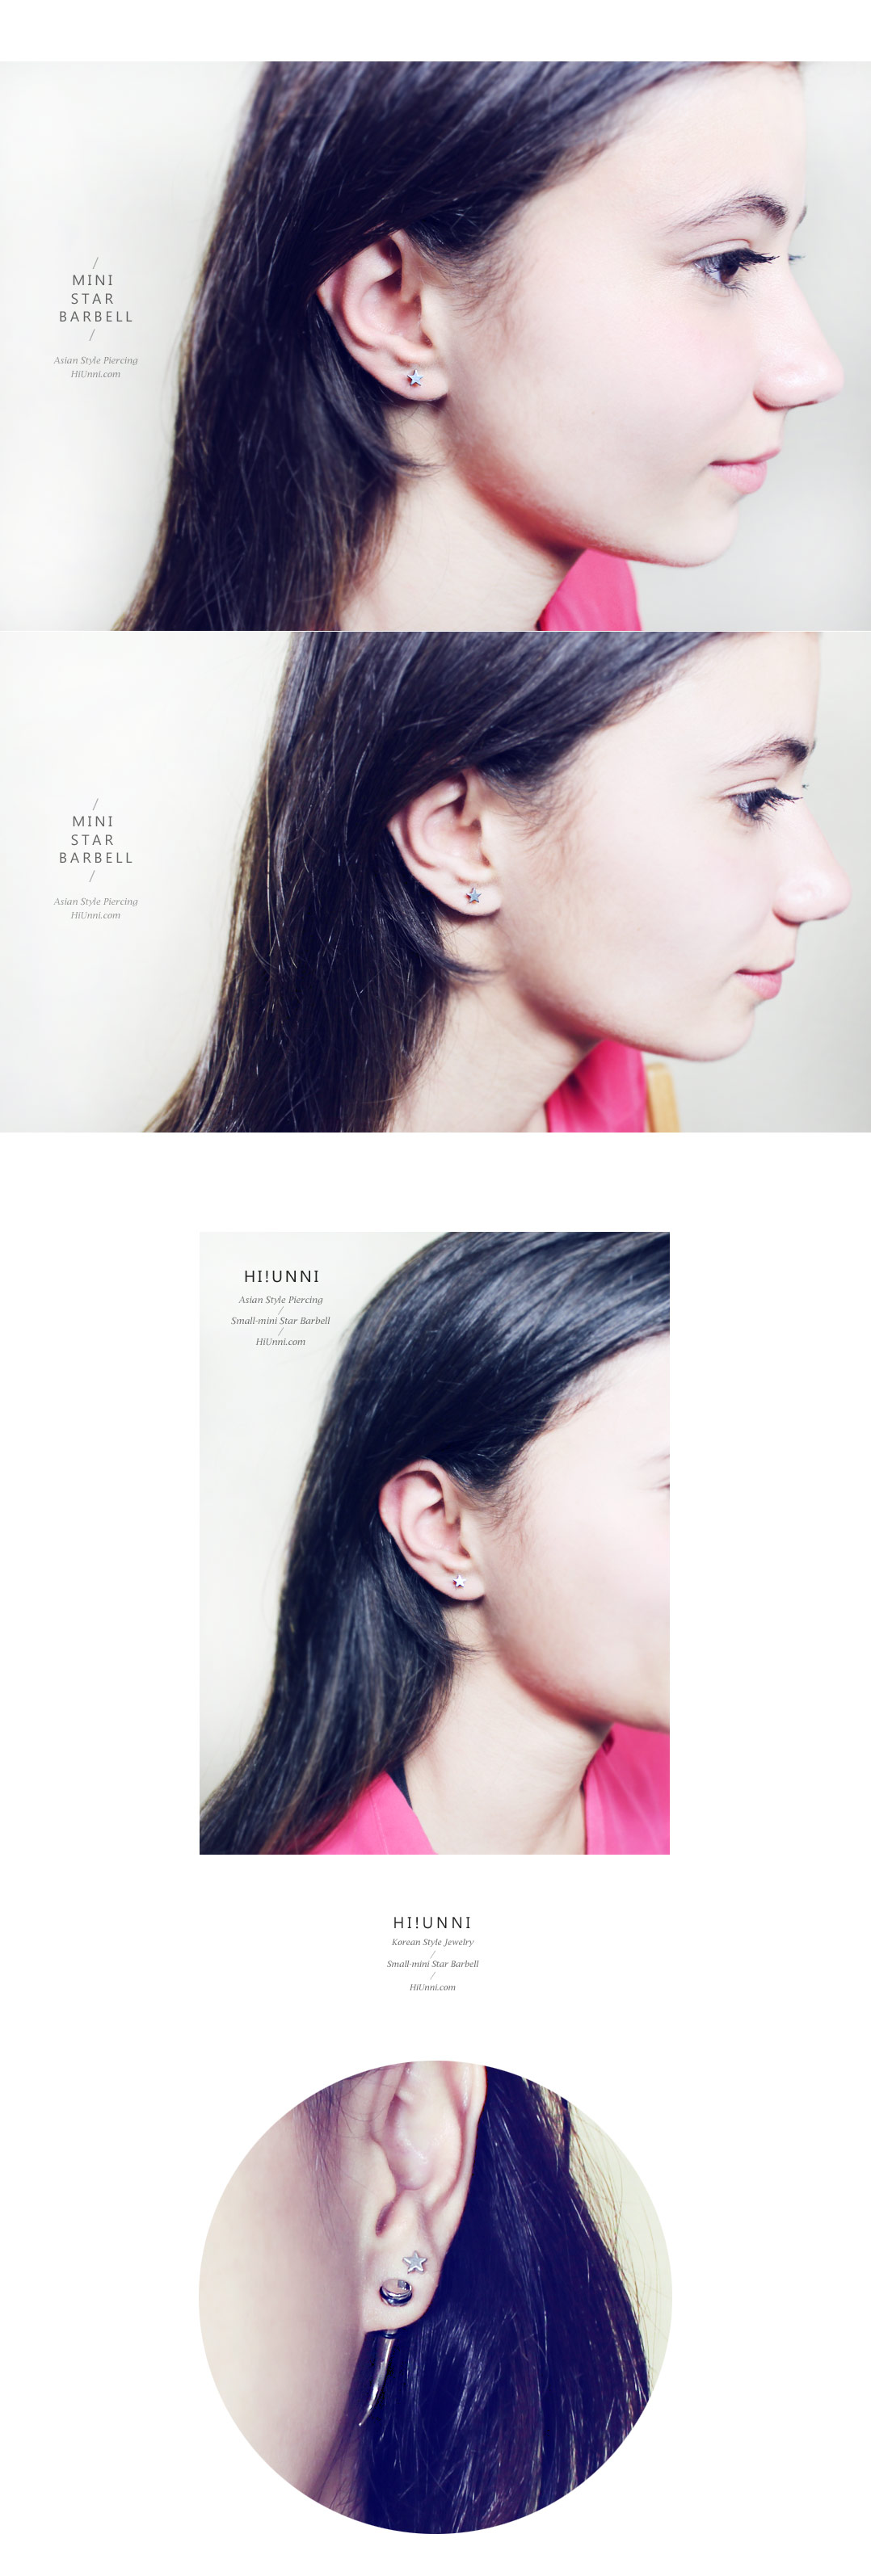 ear_studs_piercing_Cartilage_16g_316l_Stainless_Steel_earring_korean_asian_style_barbell_small_tragus_3